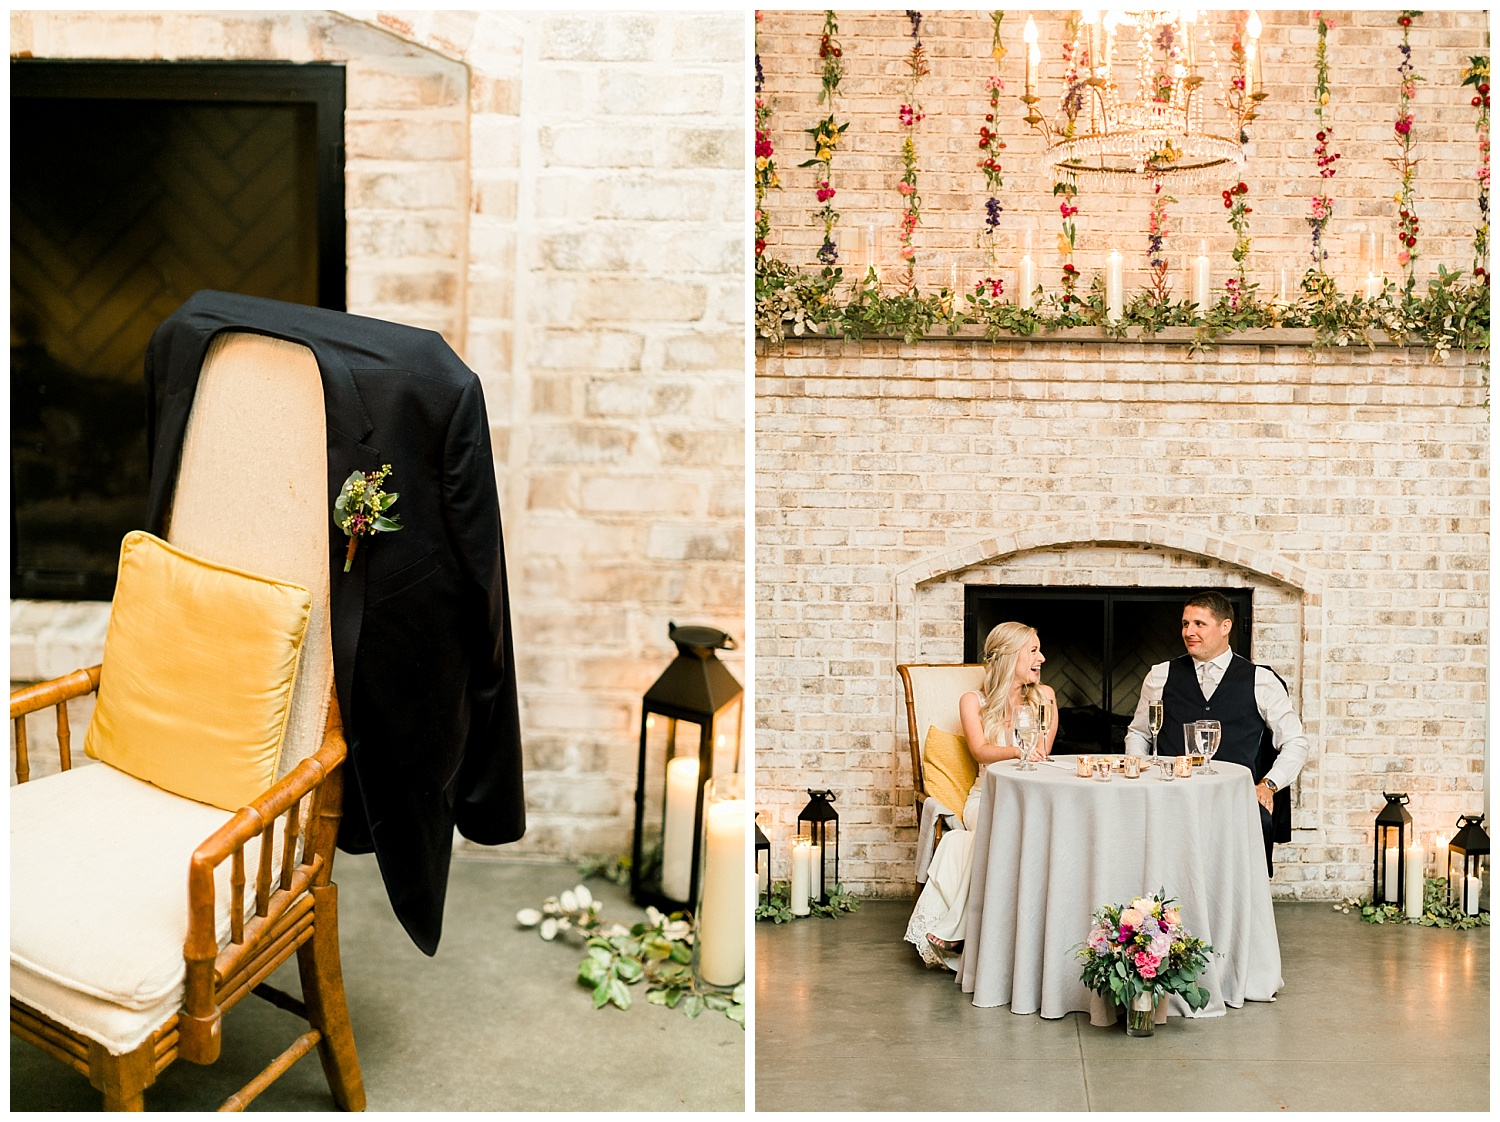 Wrightsville Manor Wedding Wilmington NC_Erin L. Taylor Photography_0051.jpg